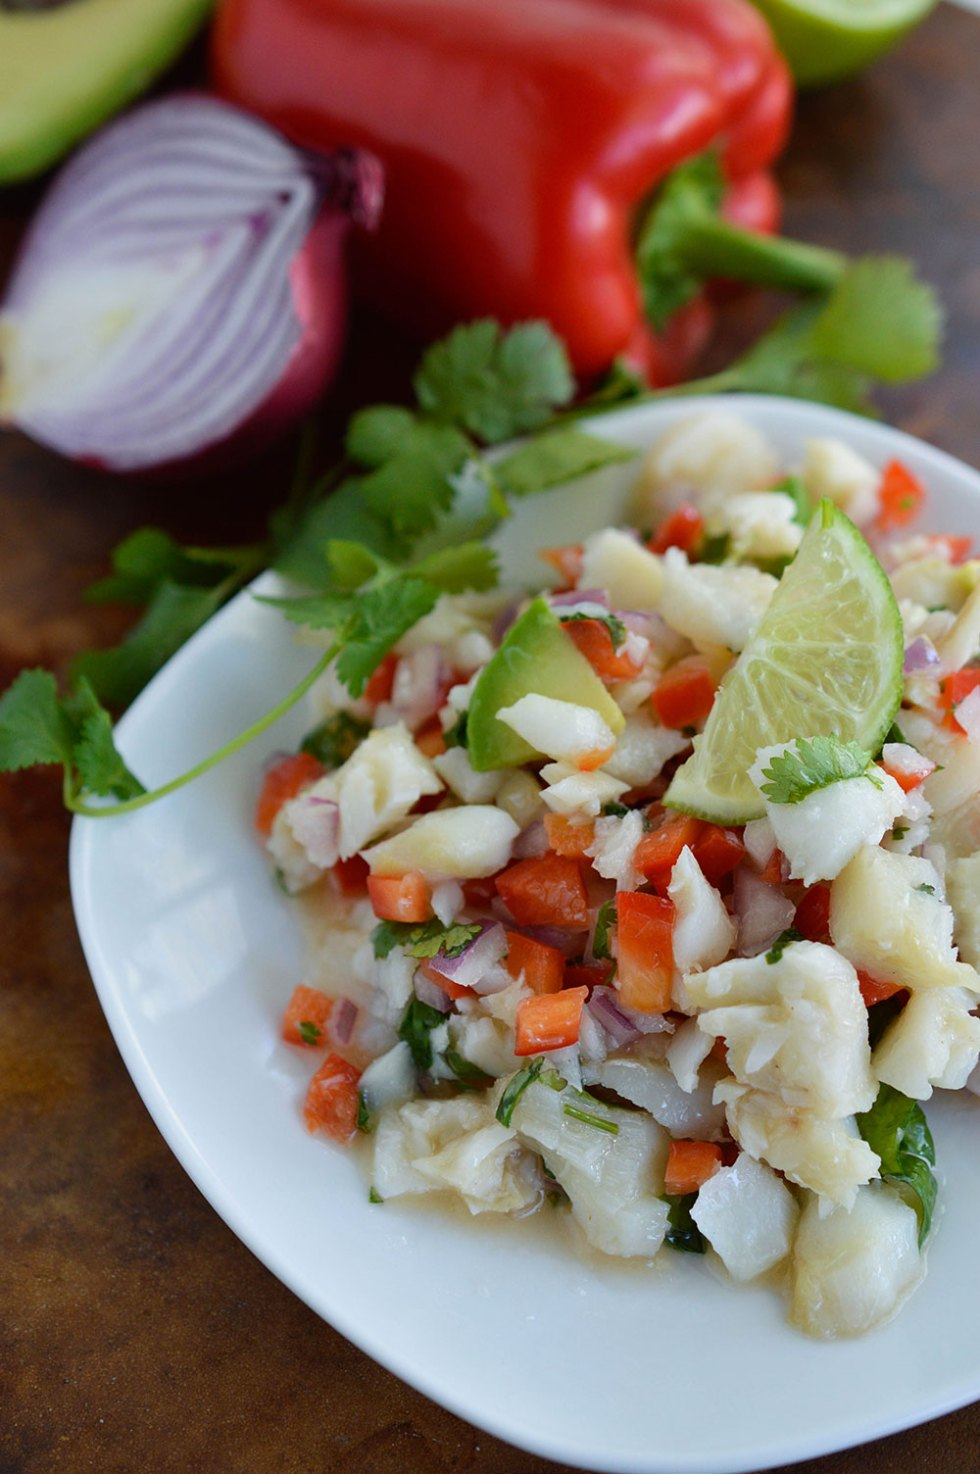 Salted Cod Recipe inspired by a Caribbean favorite (bacaloa). Salt and cod fish combined with fresh ingredients for a unique dish. #whole30recipes #paleorecipes